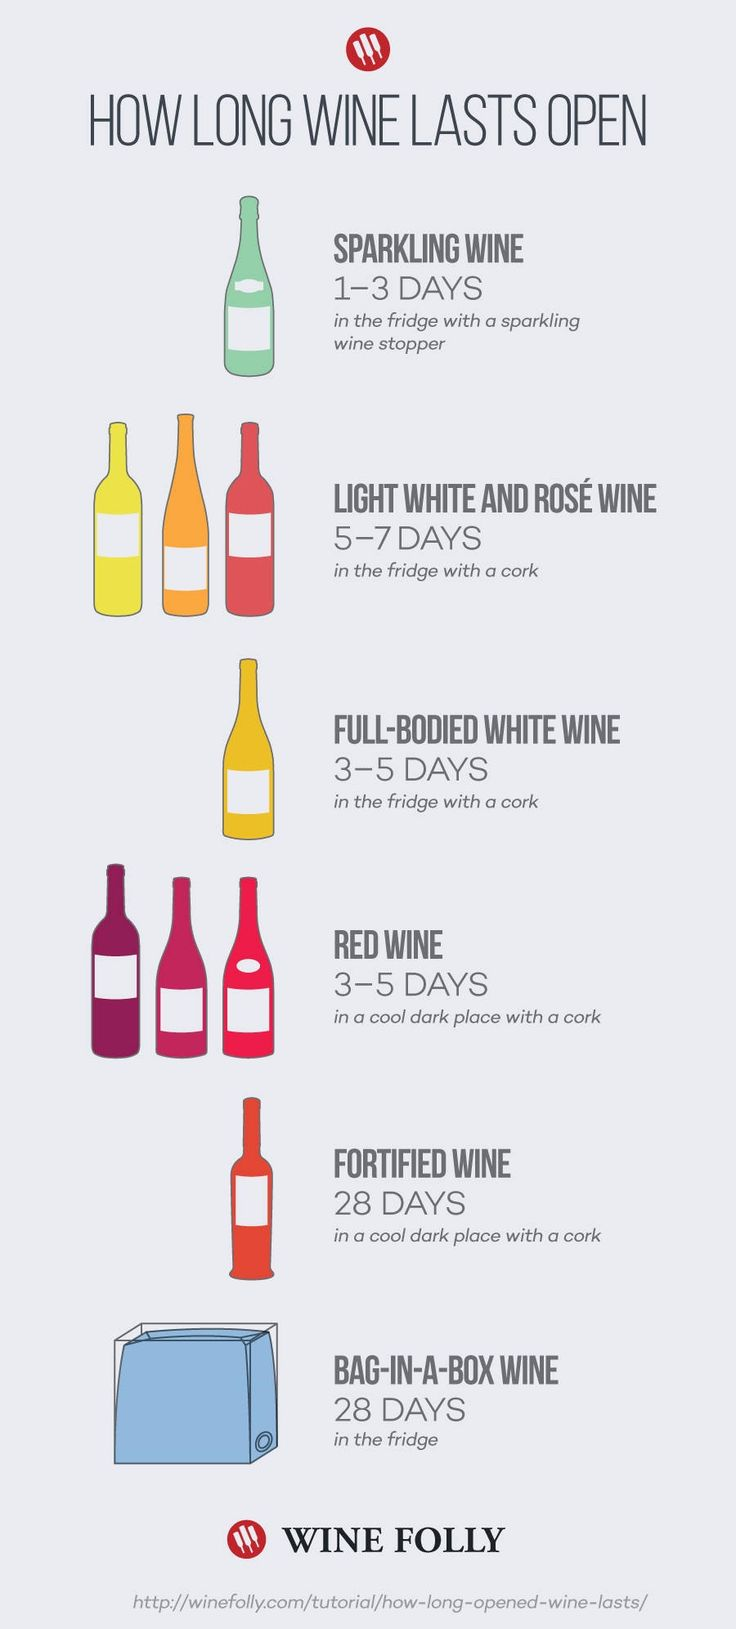 How Long Does Wine Last Opened? | Bon Viveur Gastronomy | Pinterest | Wine, Wines and Wine drinks